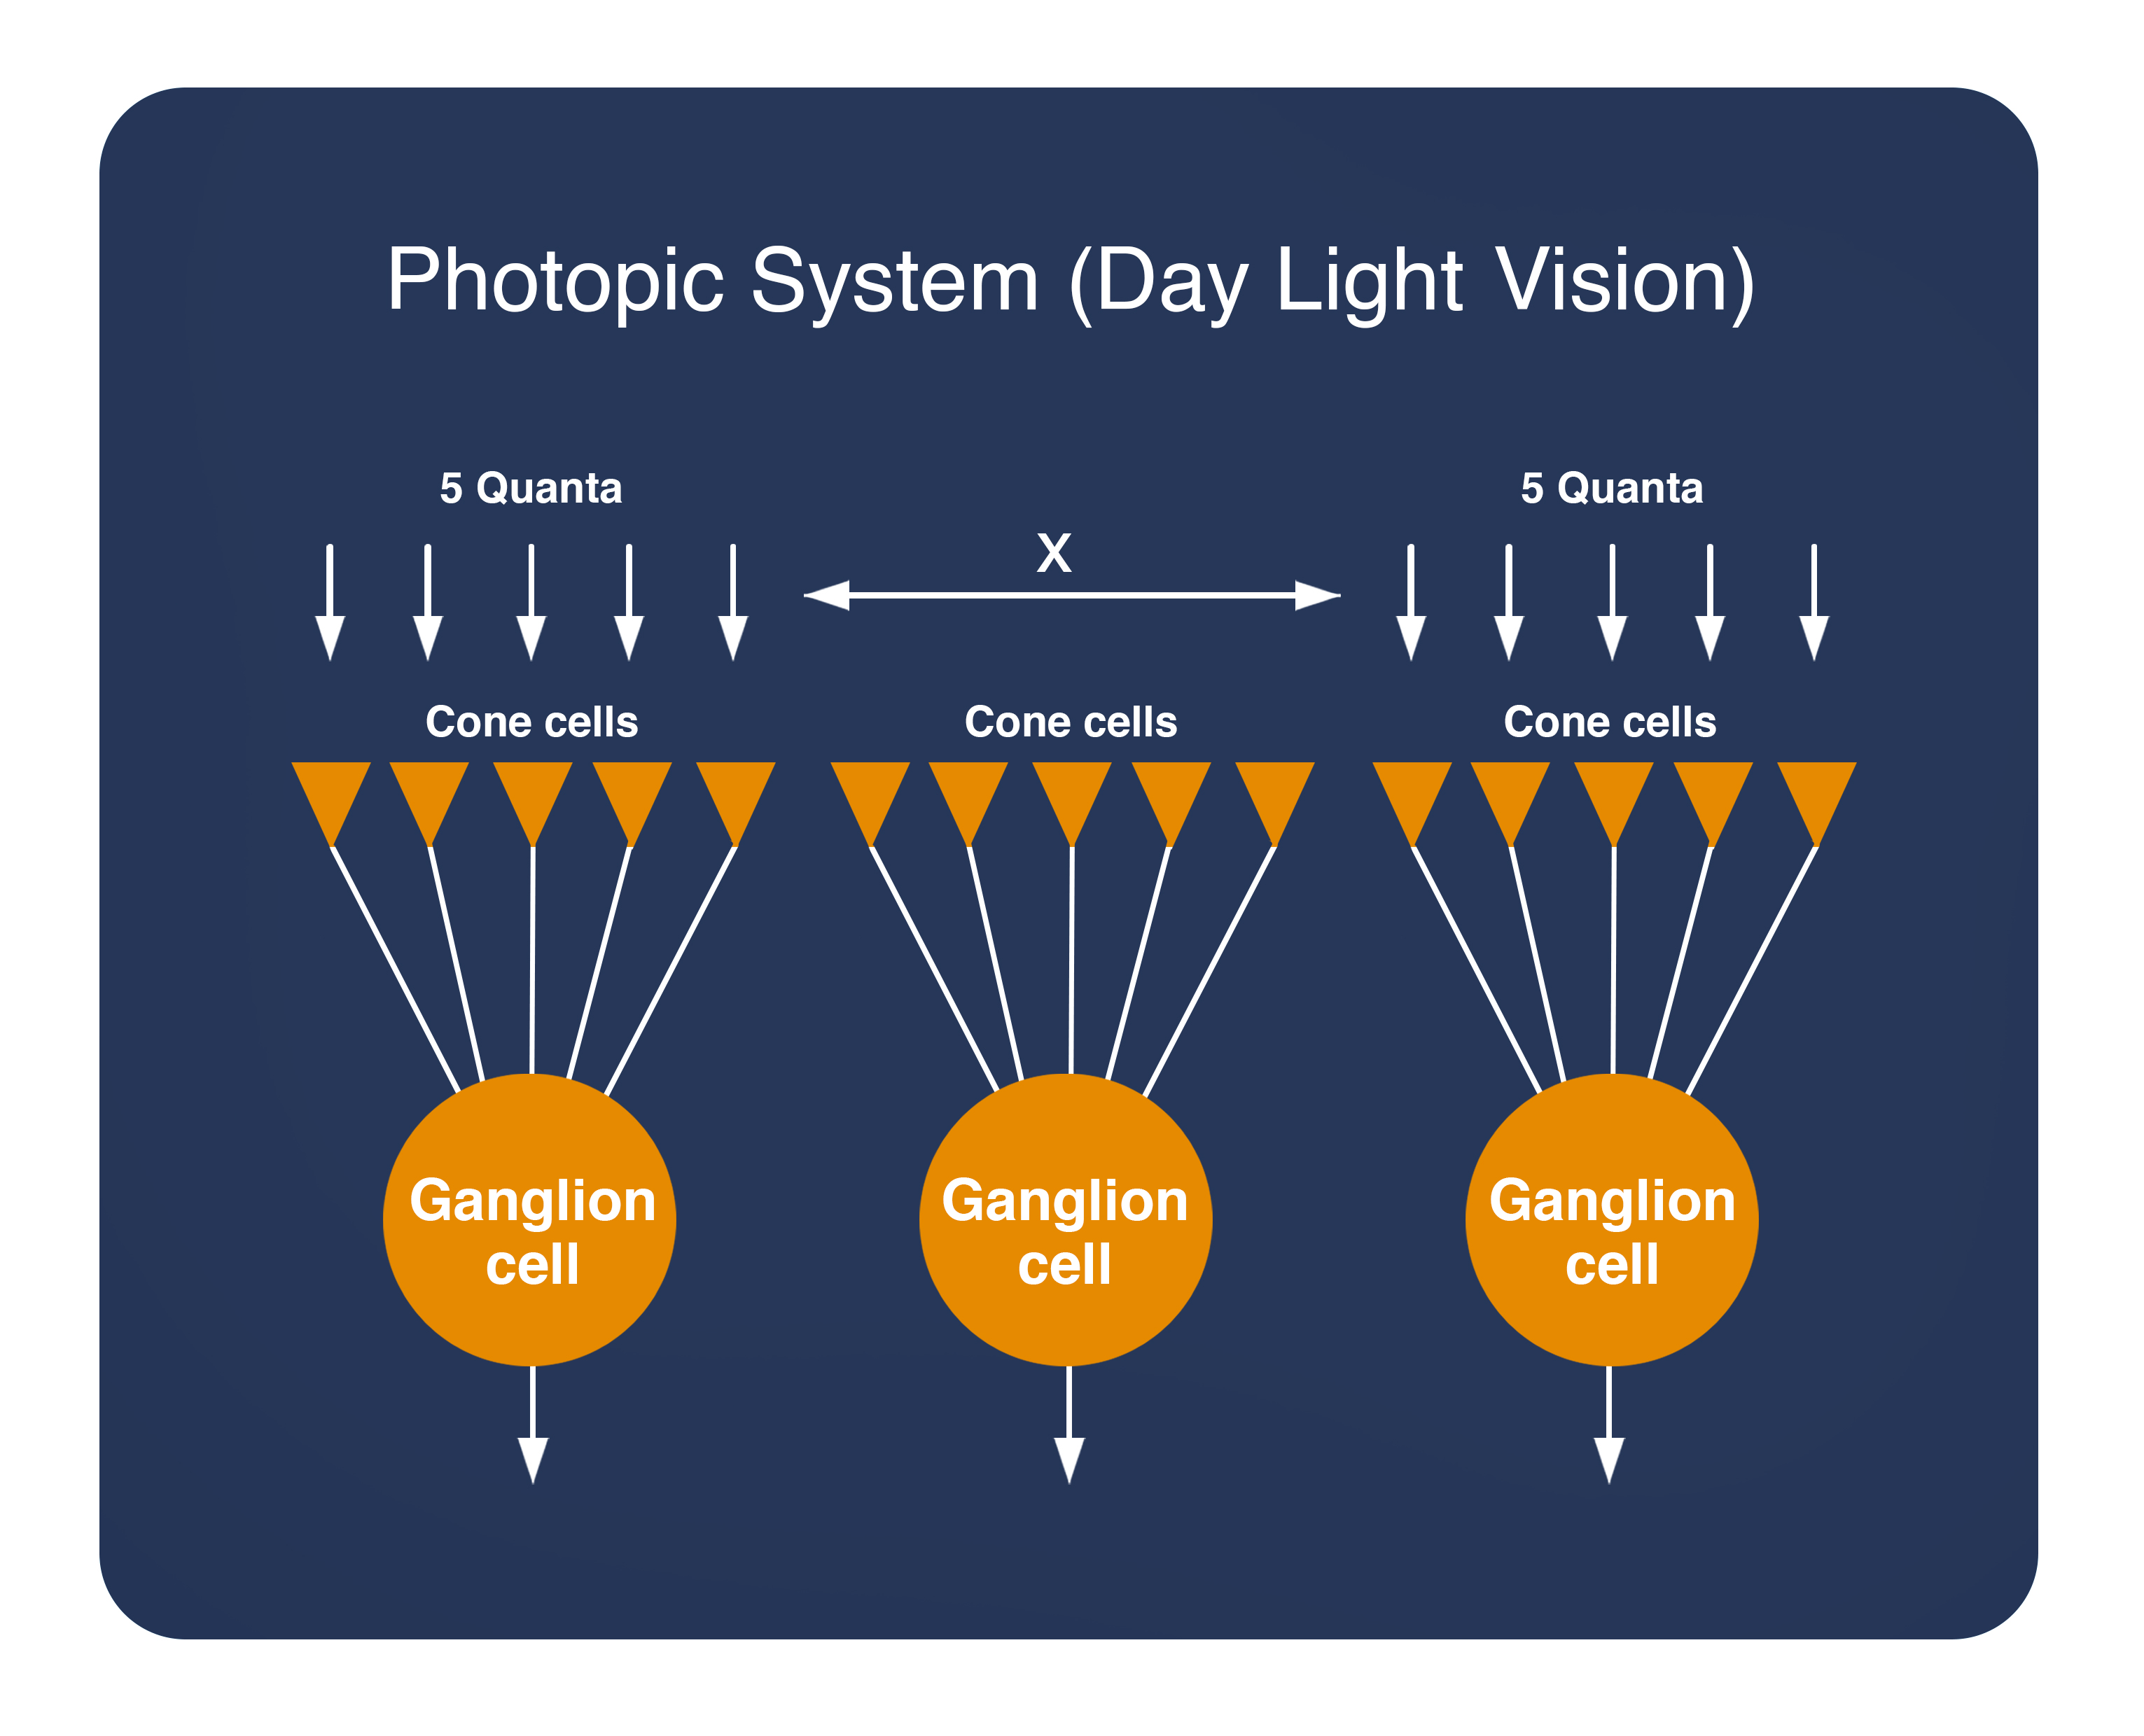 Photopic System (Day Light Vision)